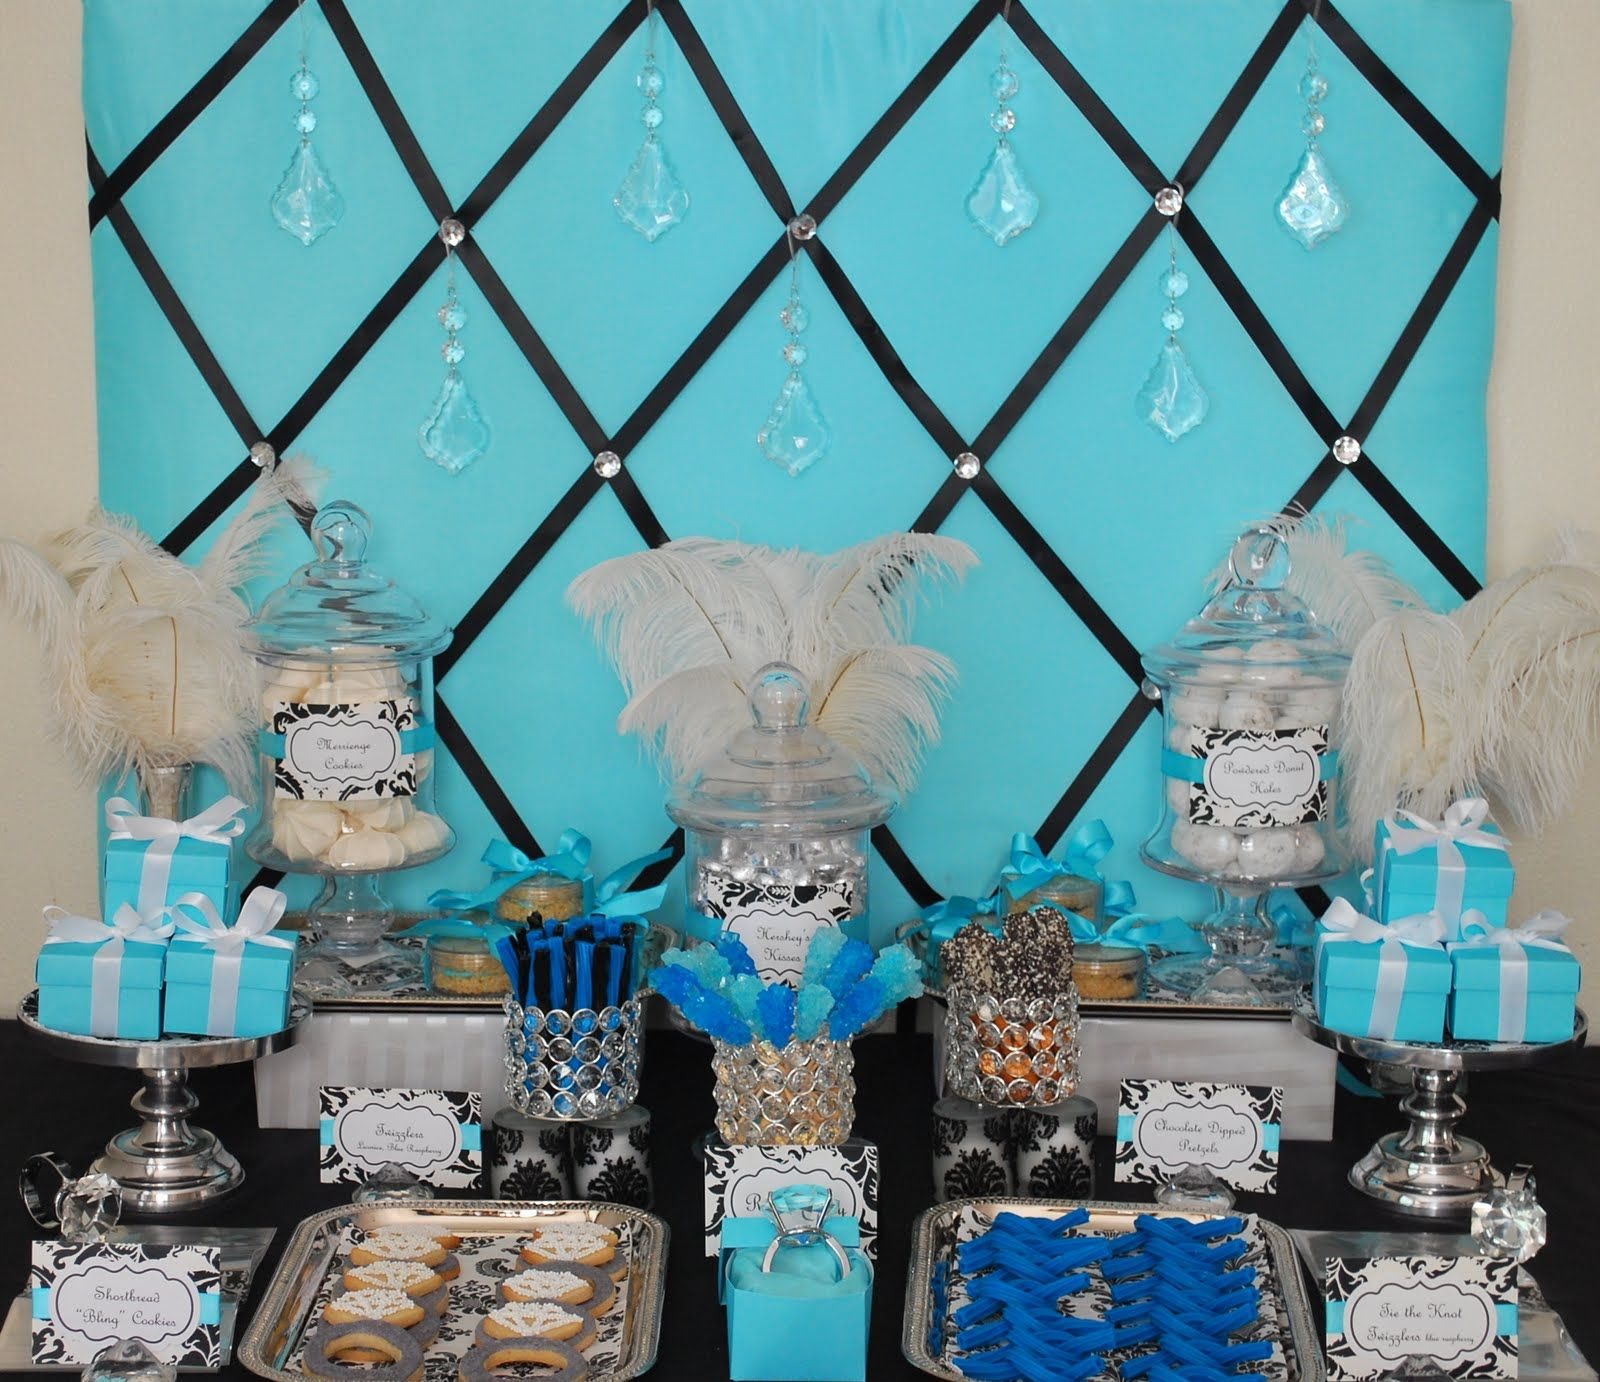 Tiffany Blue Wedding Decoration Ideas: Birthday Party Ideas